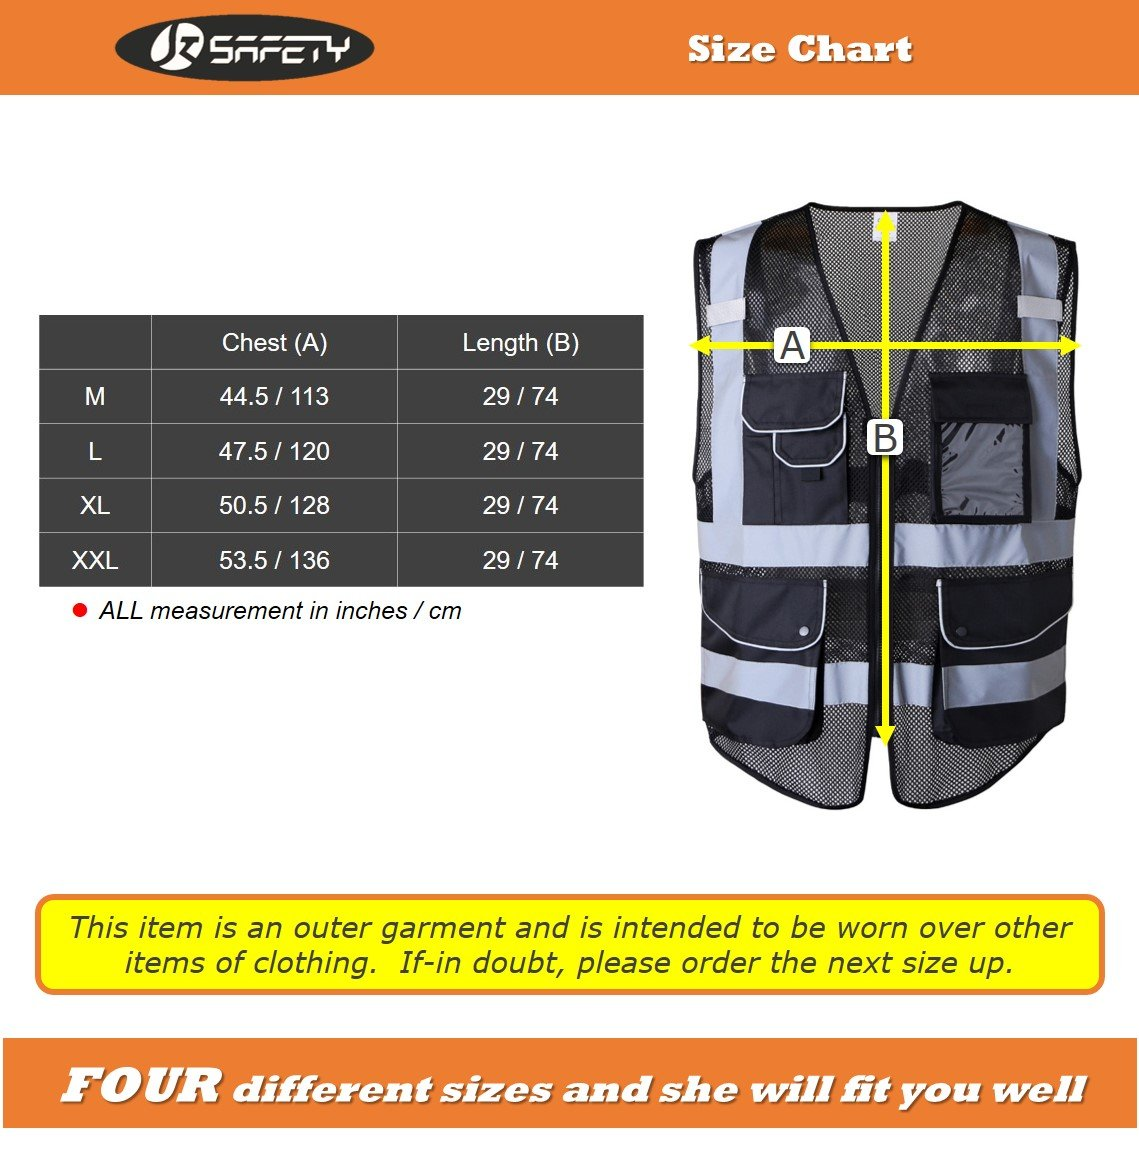 JKSafety 9 Pockets Class 2 High Visibility Zipper Front Safety Vest With Reflective Strips,HQ Breathable Mesh, Oxford Fabric for pocket materials. Black Meets ANSI/ISEA Standards (X-Large, Black) … by JKSafety (Image #6)